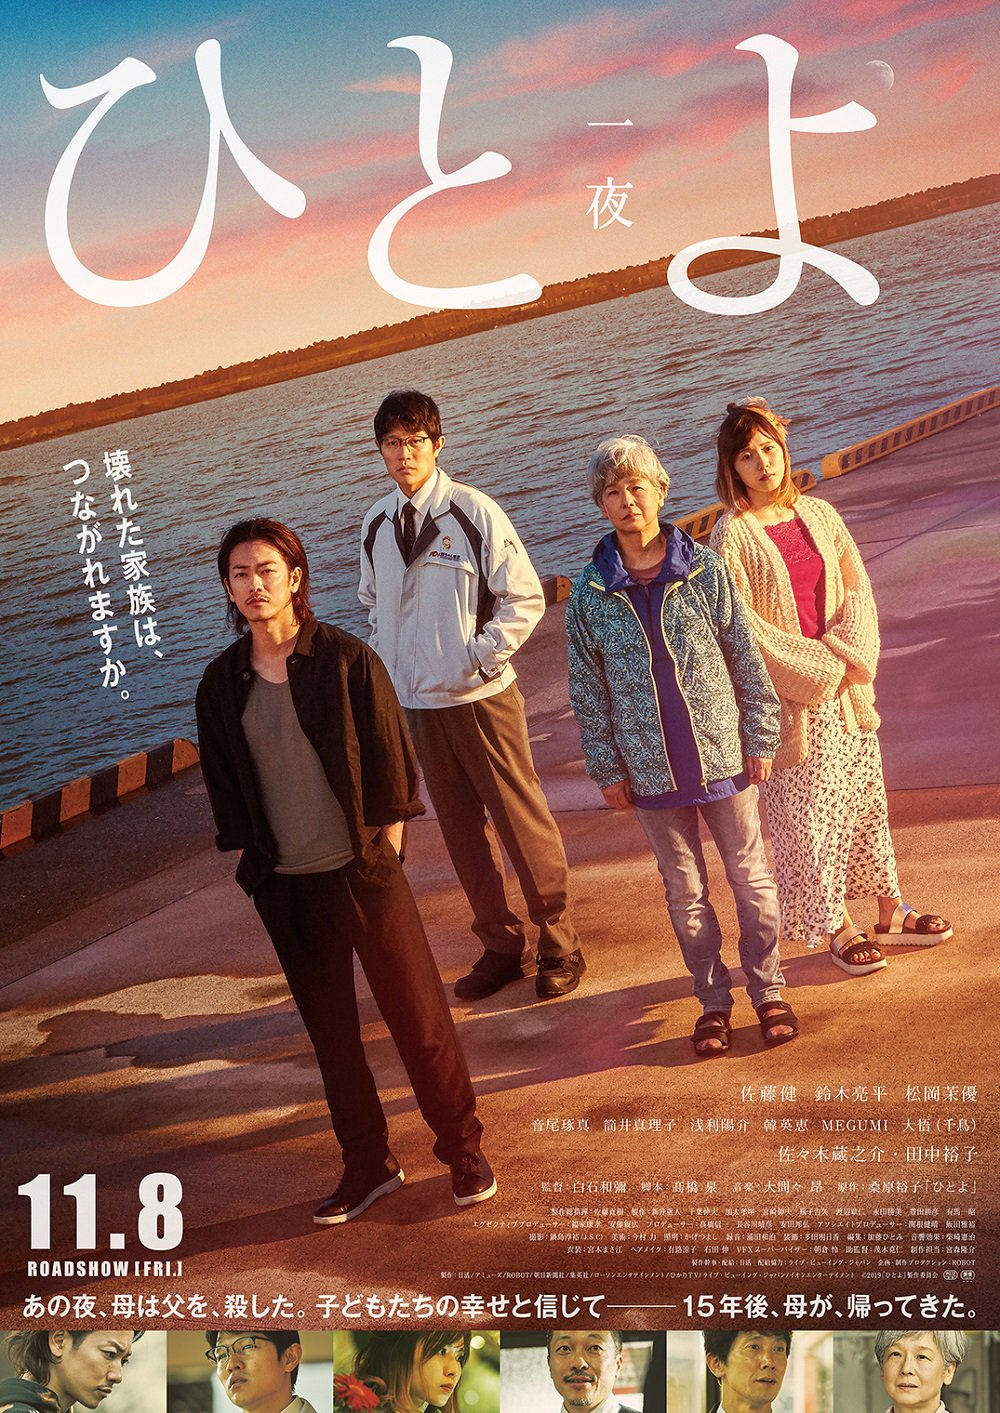 Sinopsis Film Over Night / Hitoyo (2019)